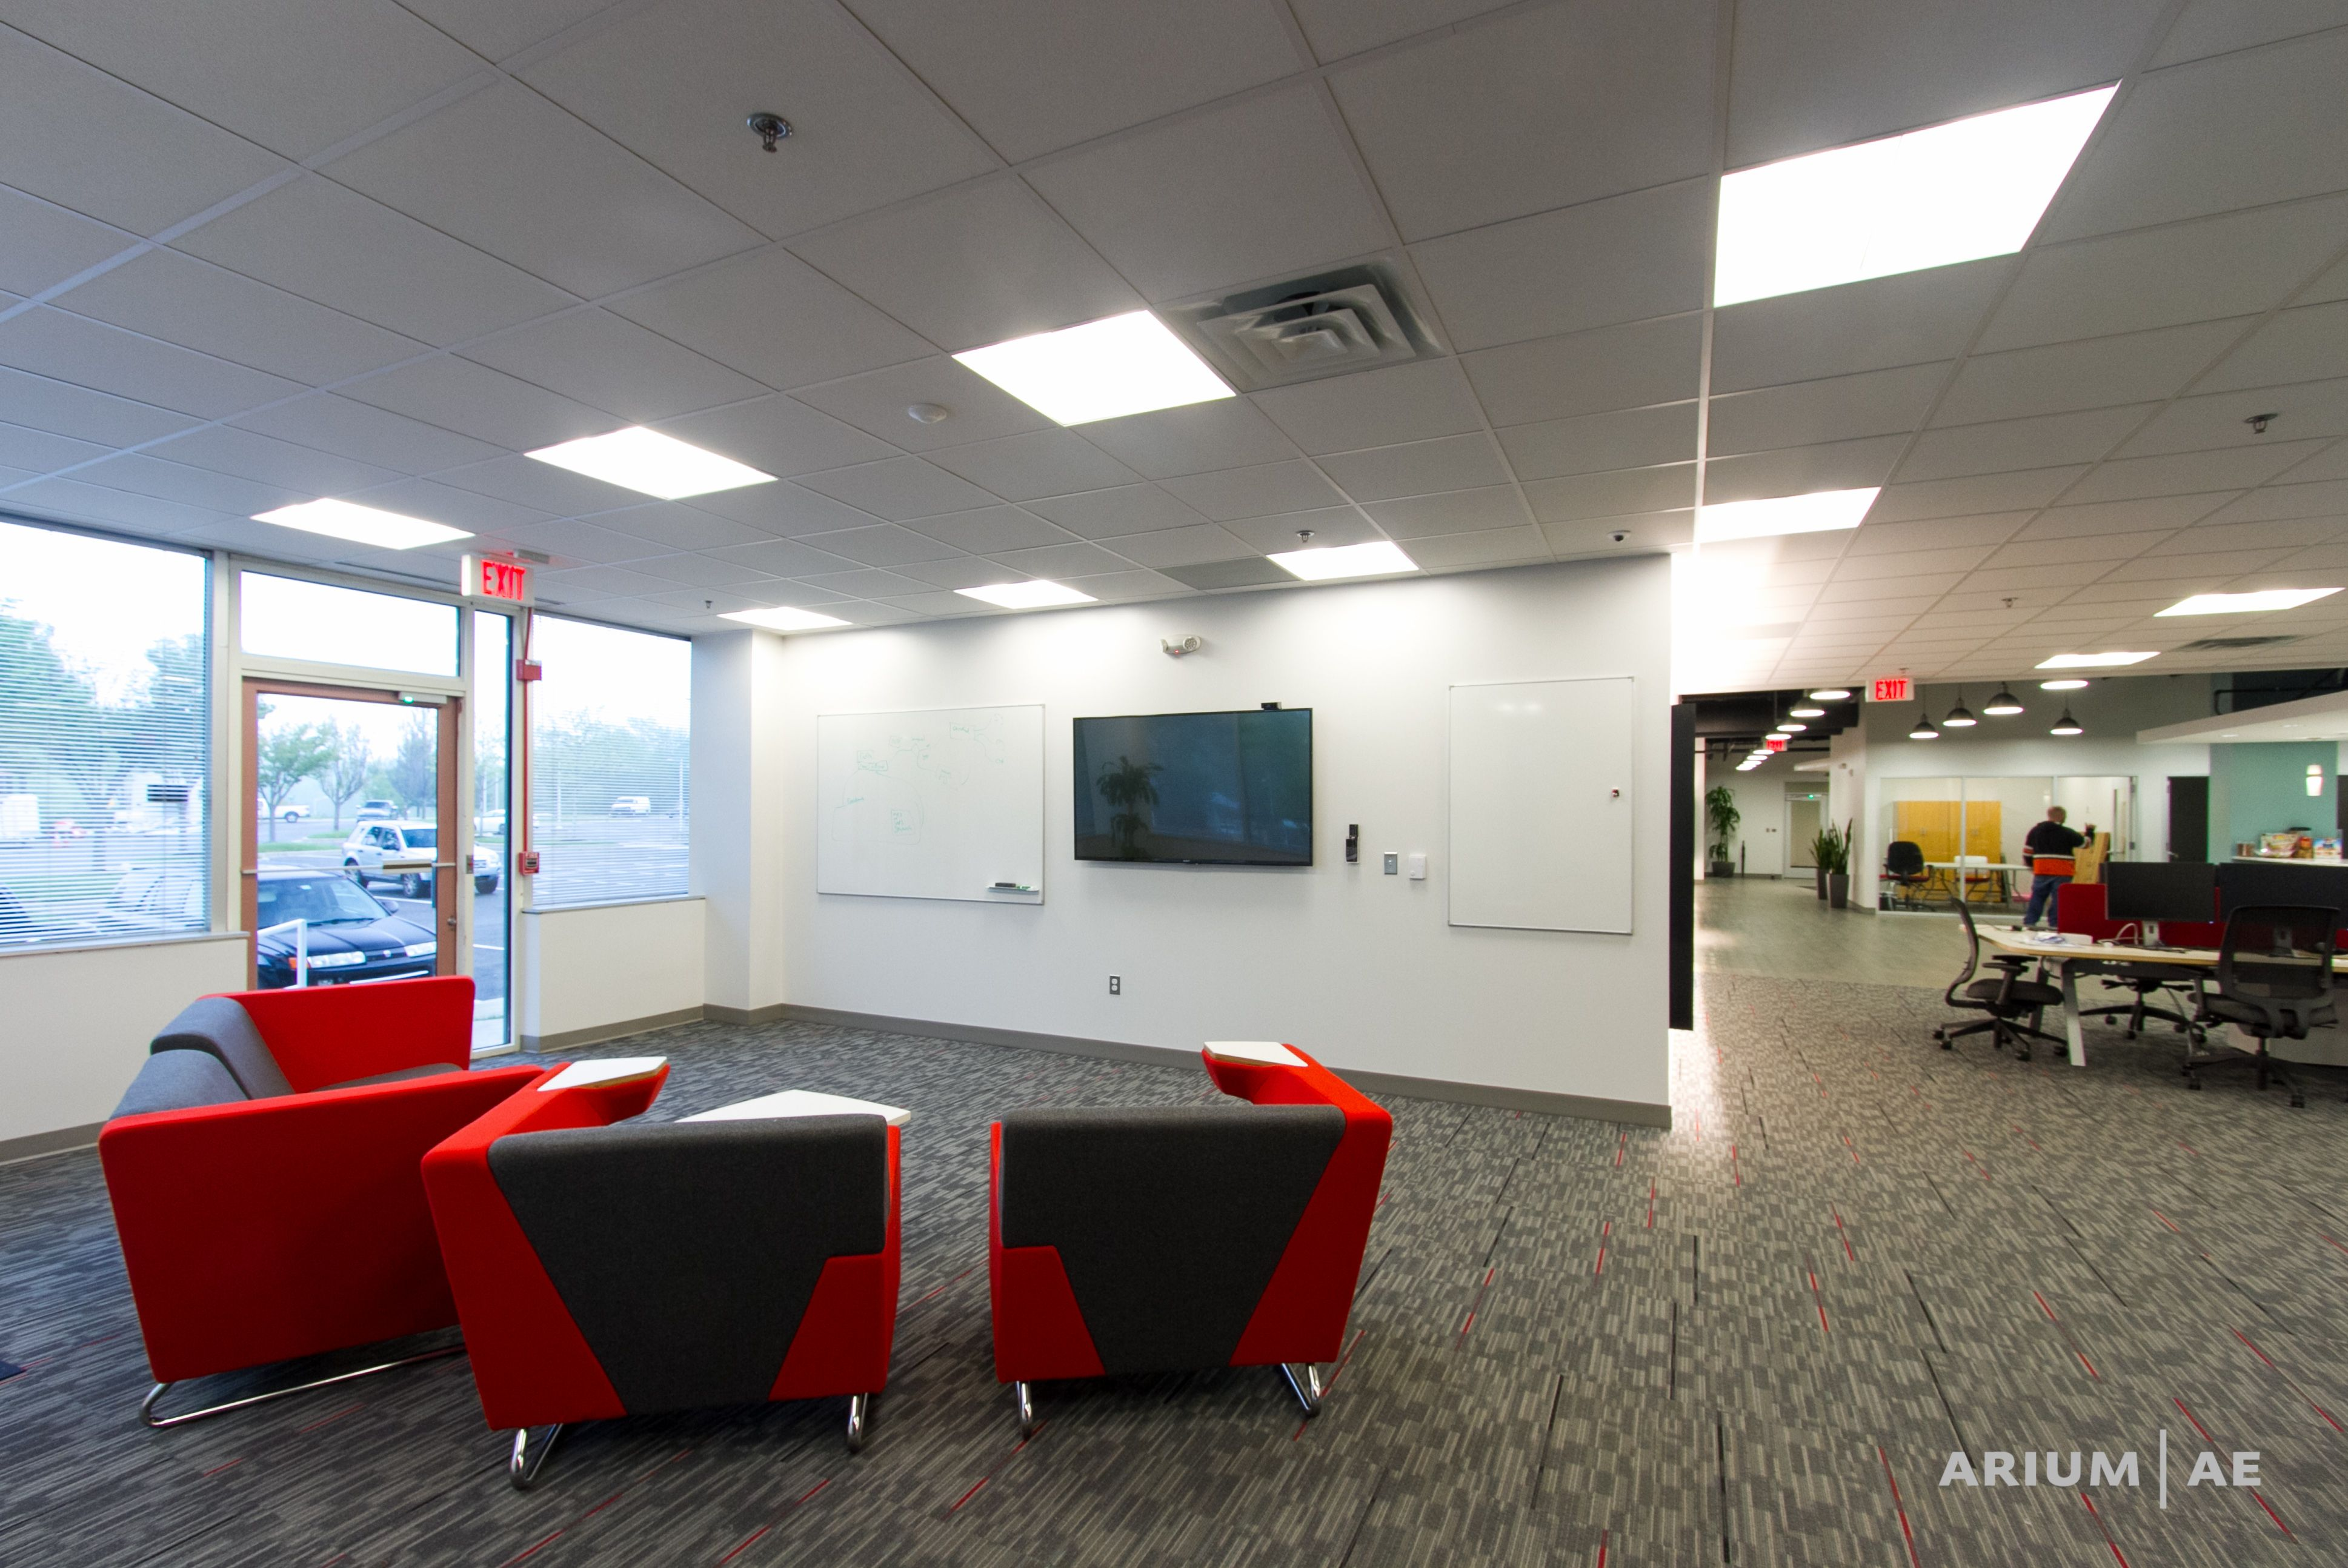 Collaboration Space In An Open Office Area Light Cove Accent